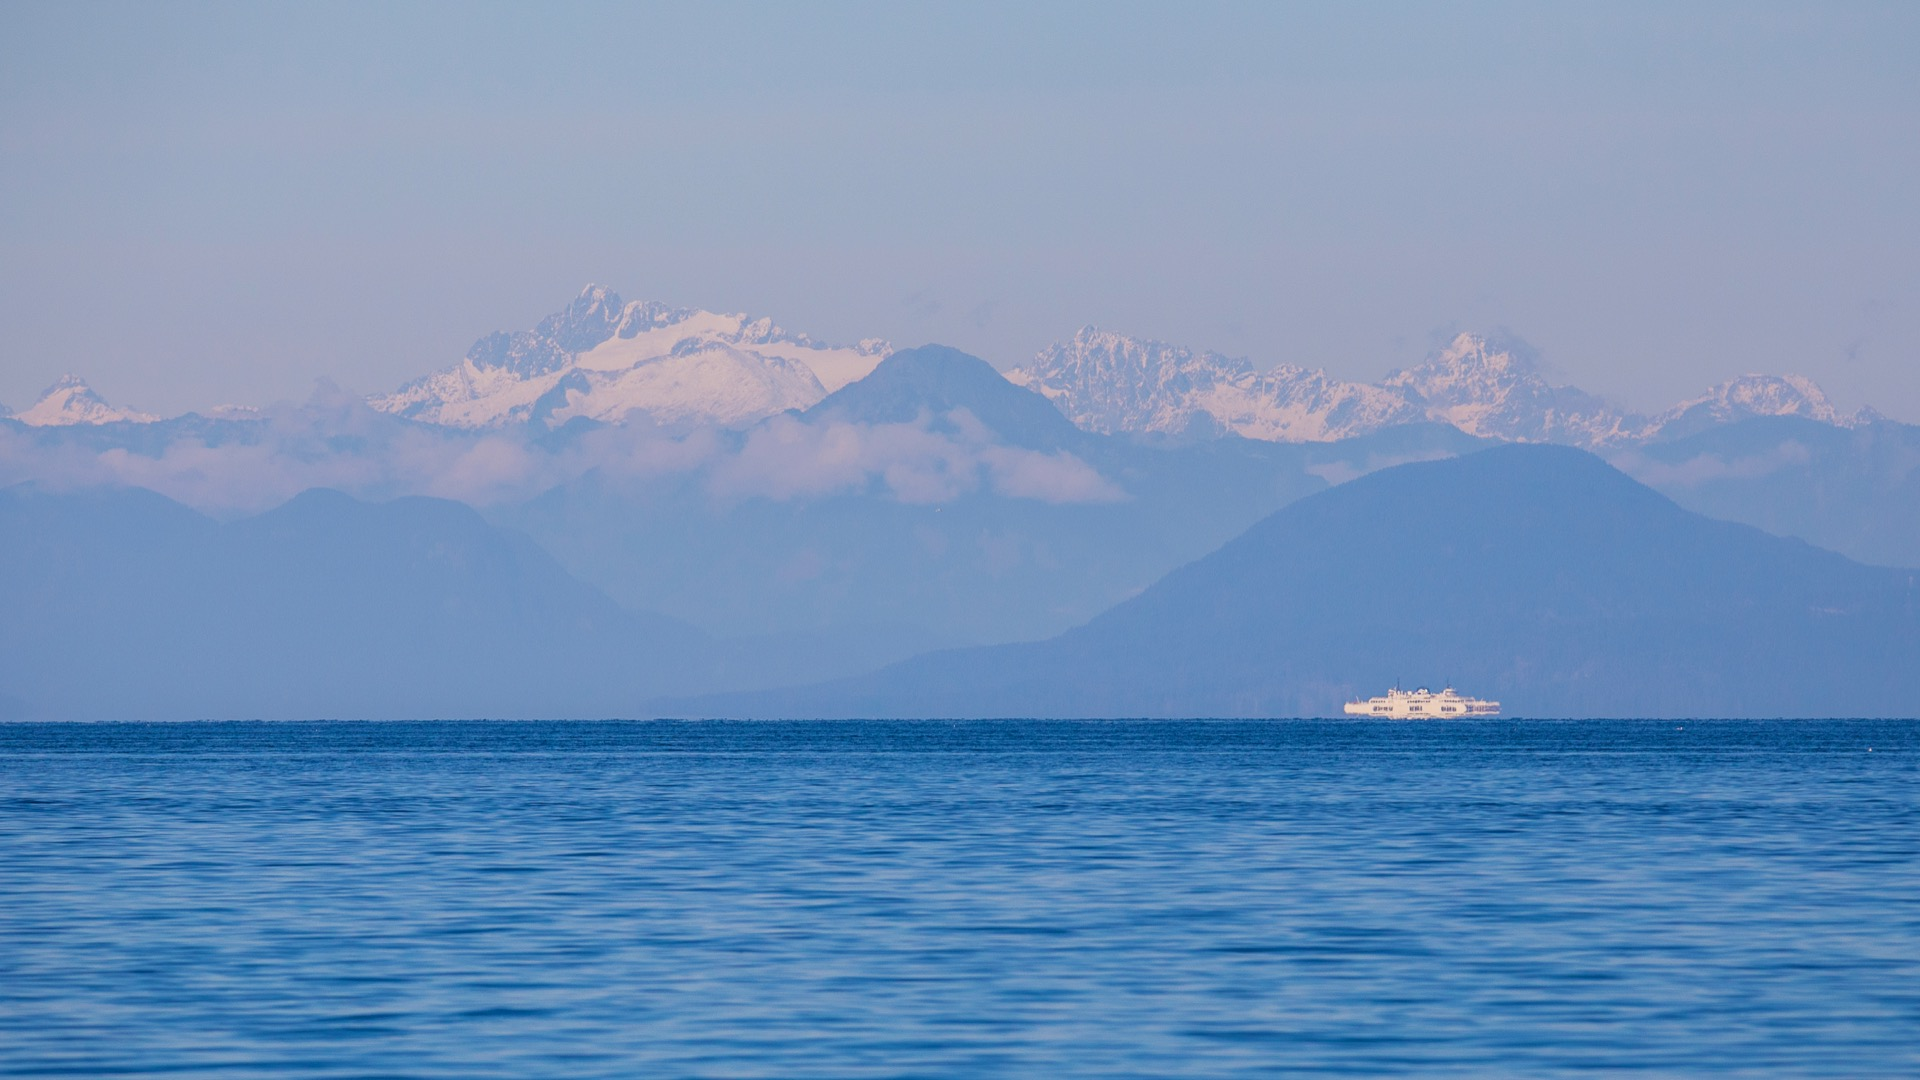 A view out to the mountains on the mainland.